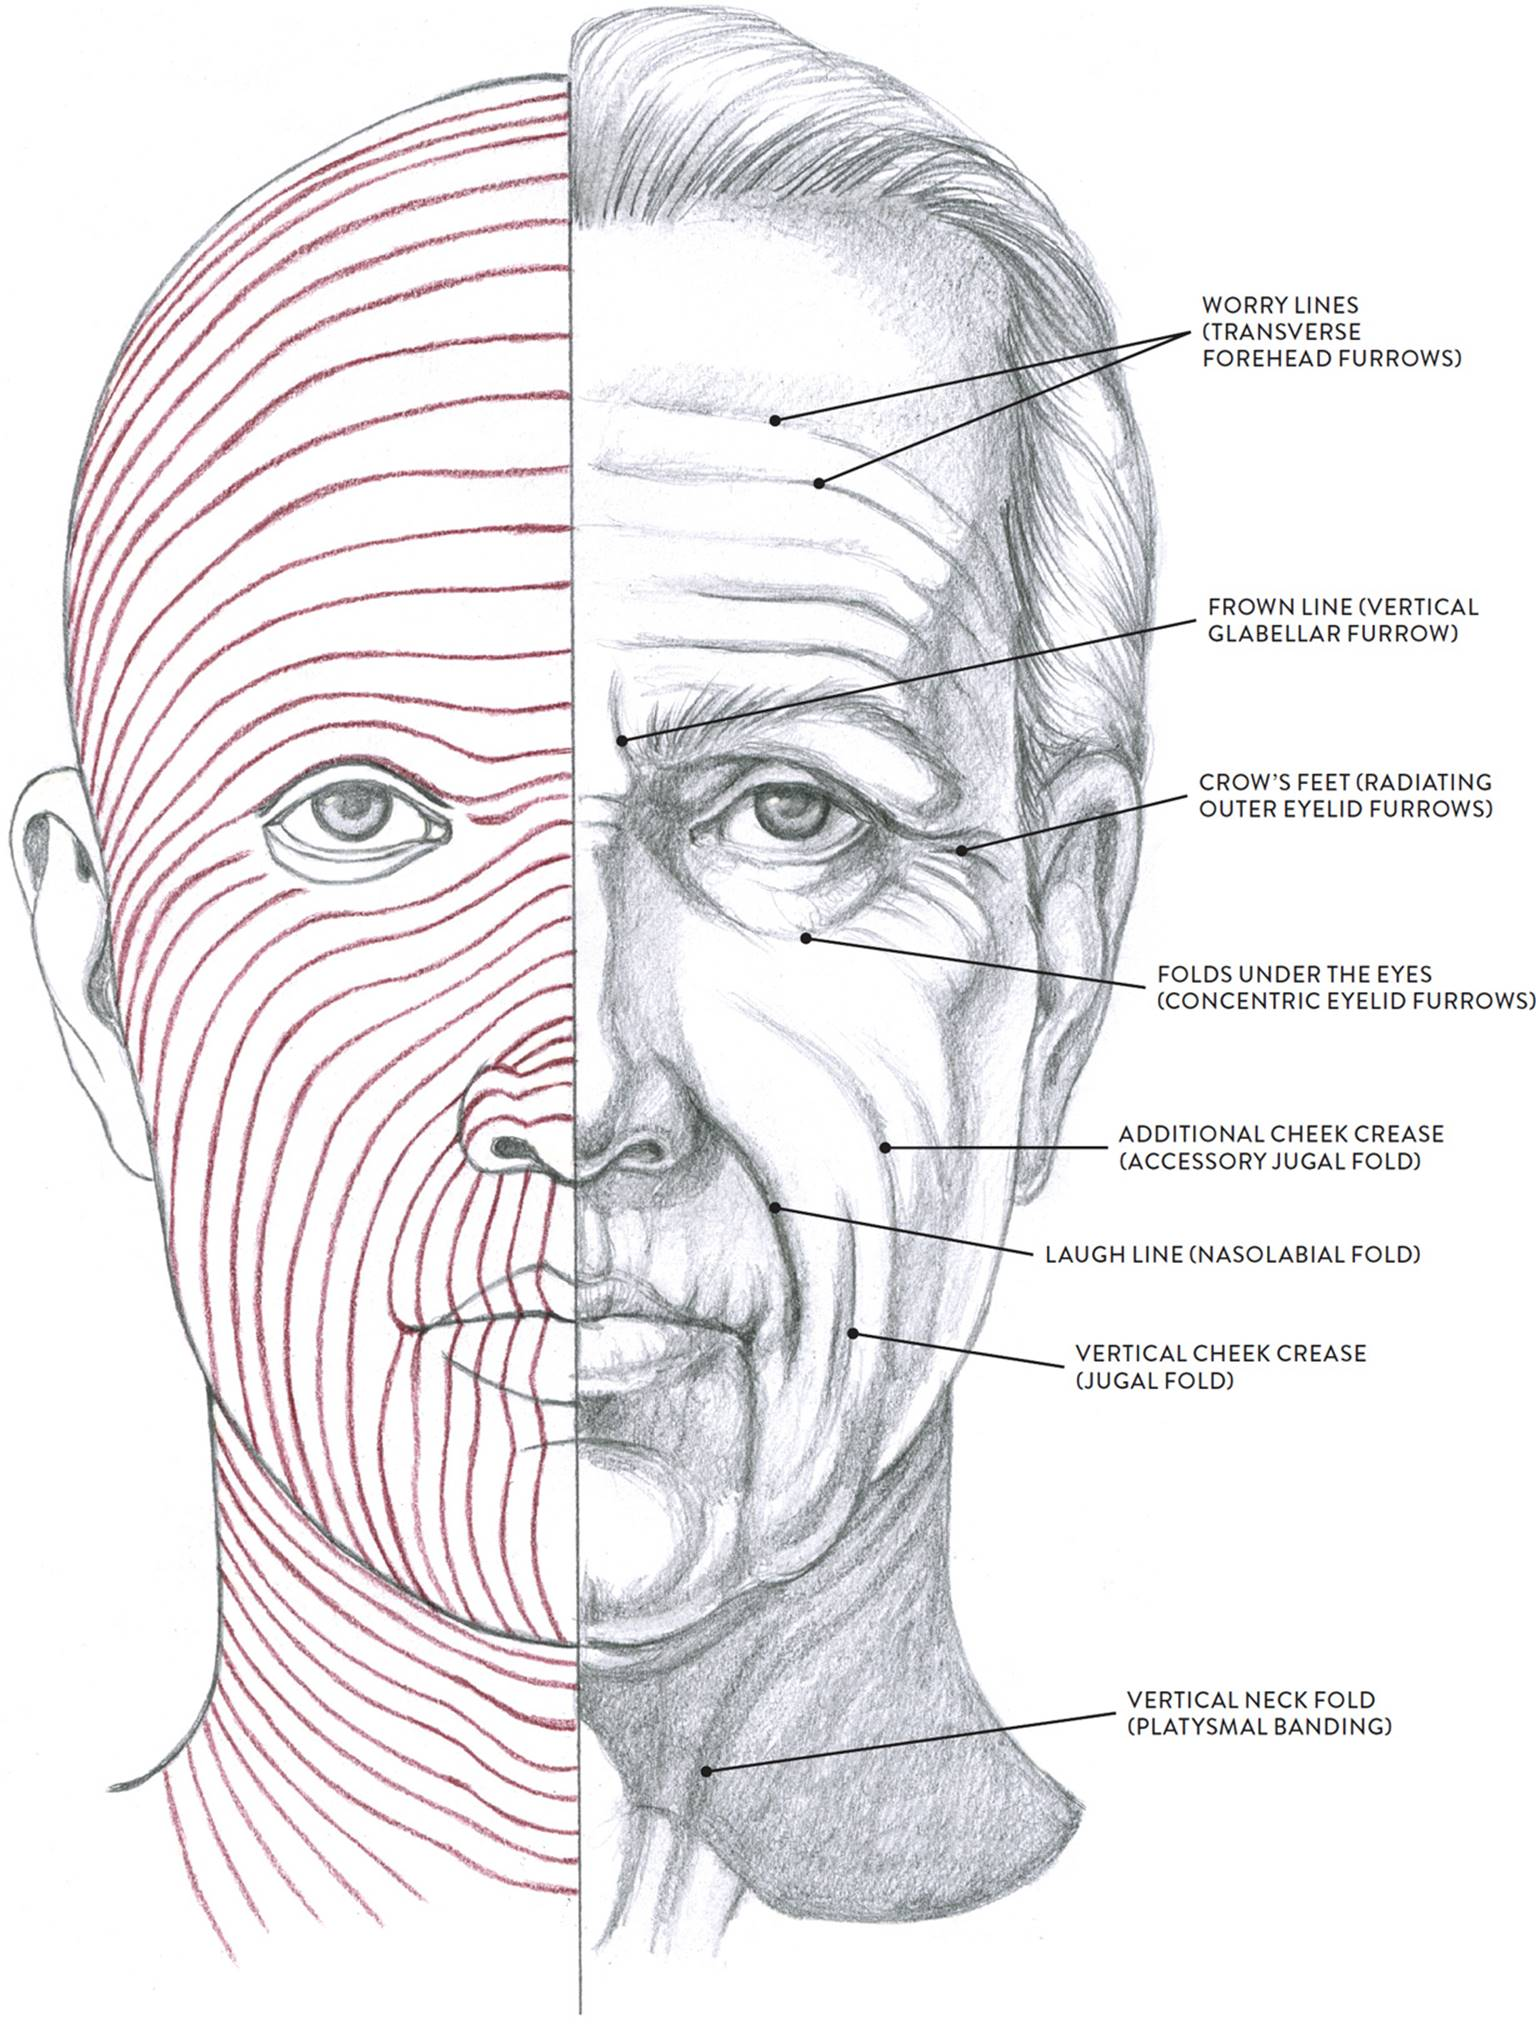 Facial Muscles and Expressions - Classic Human Anatomy in